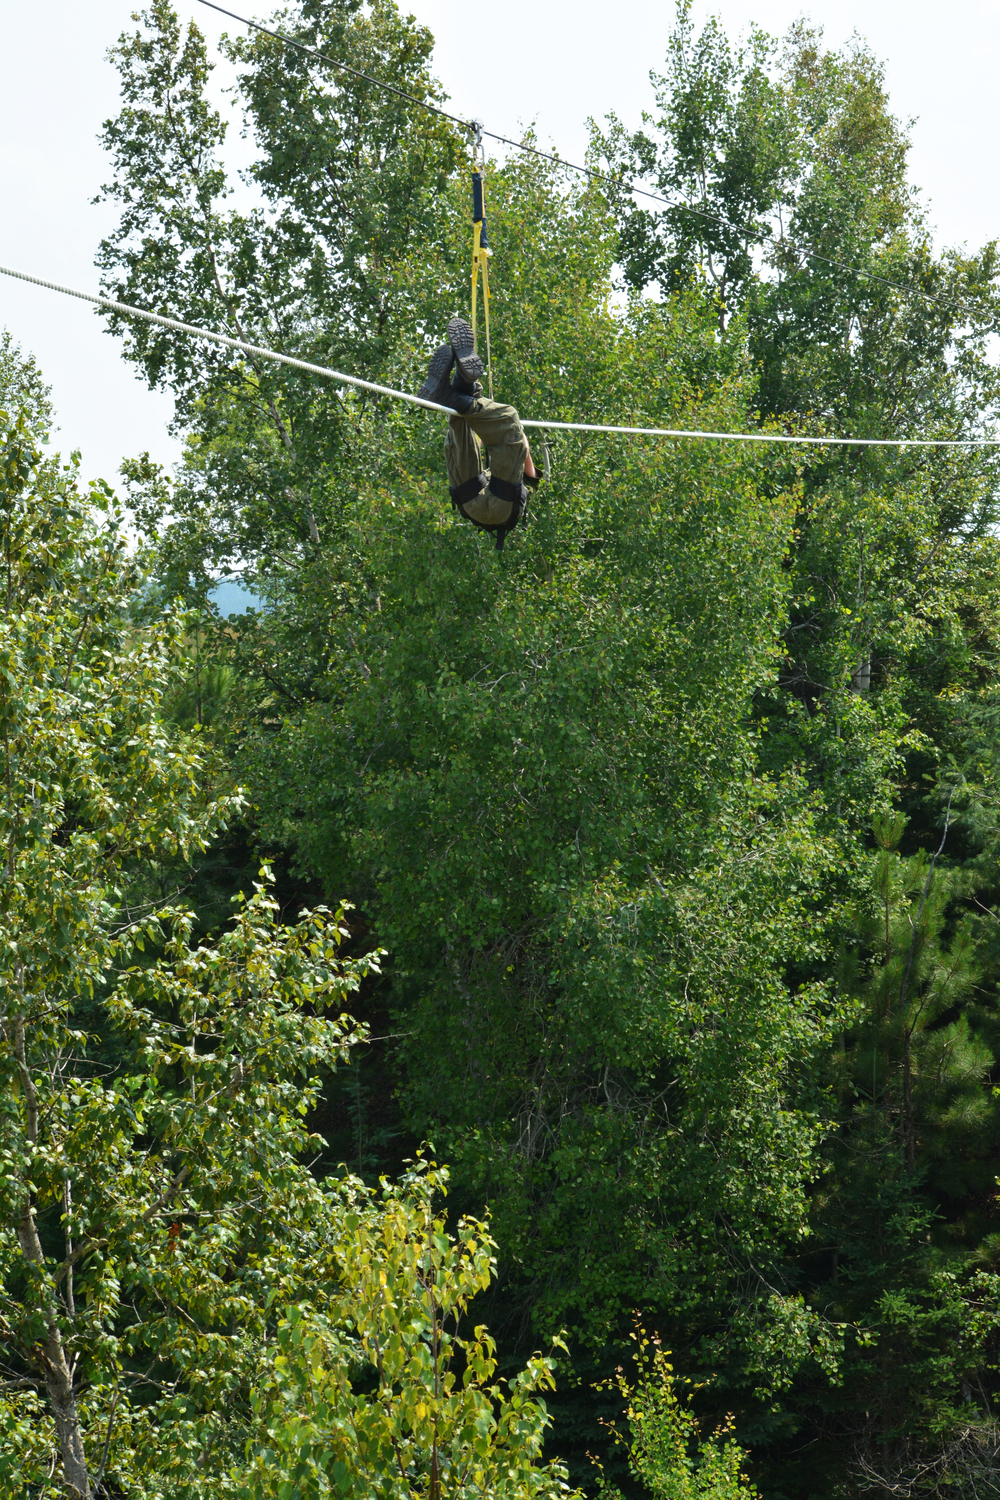 Army Cadet Kevin Mycroft inches his way across a gorge on the single-strand rope bridge as part of the General Training (GT) course at CFB Borden. (Sgt Kevin Parle, DND)